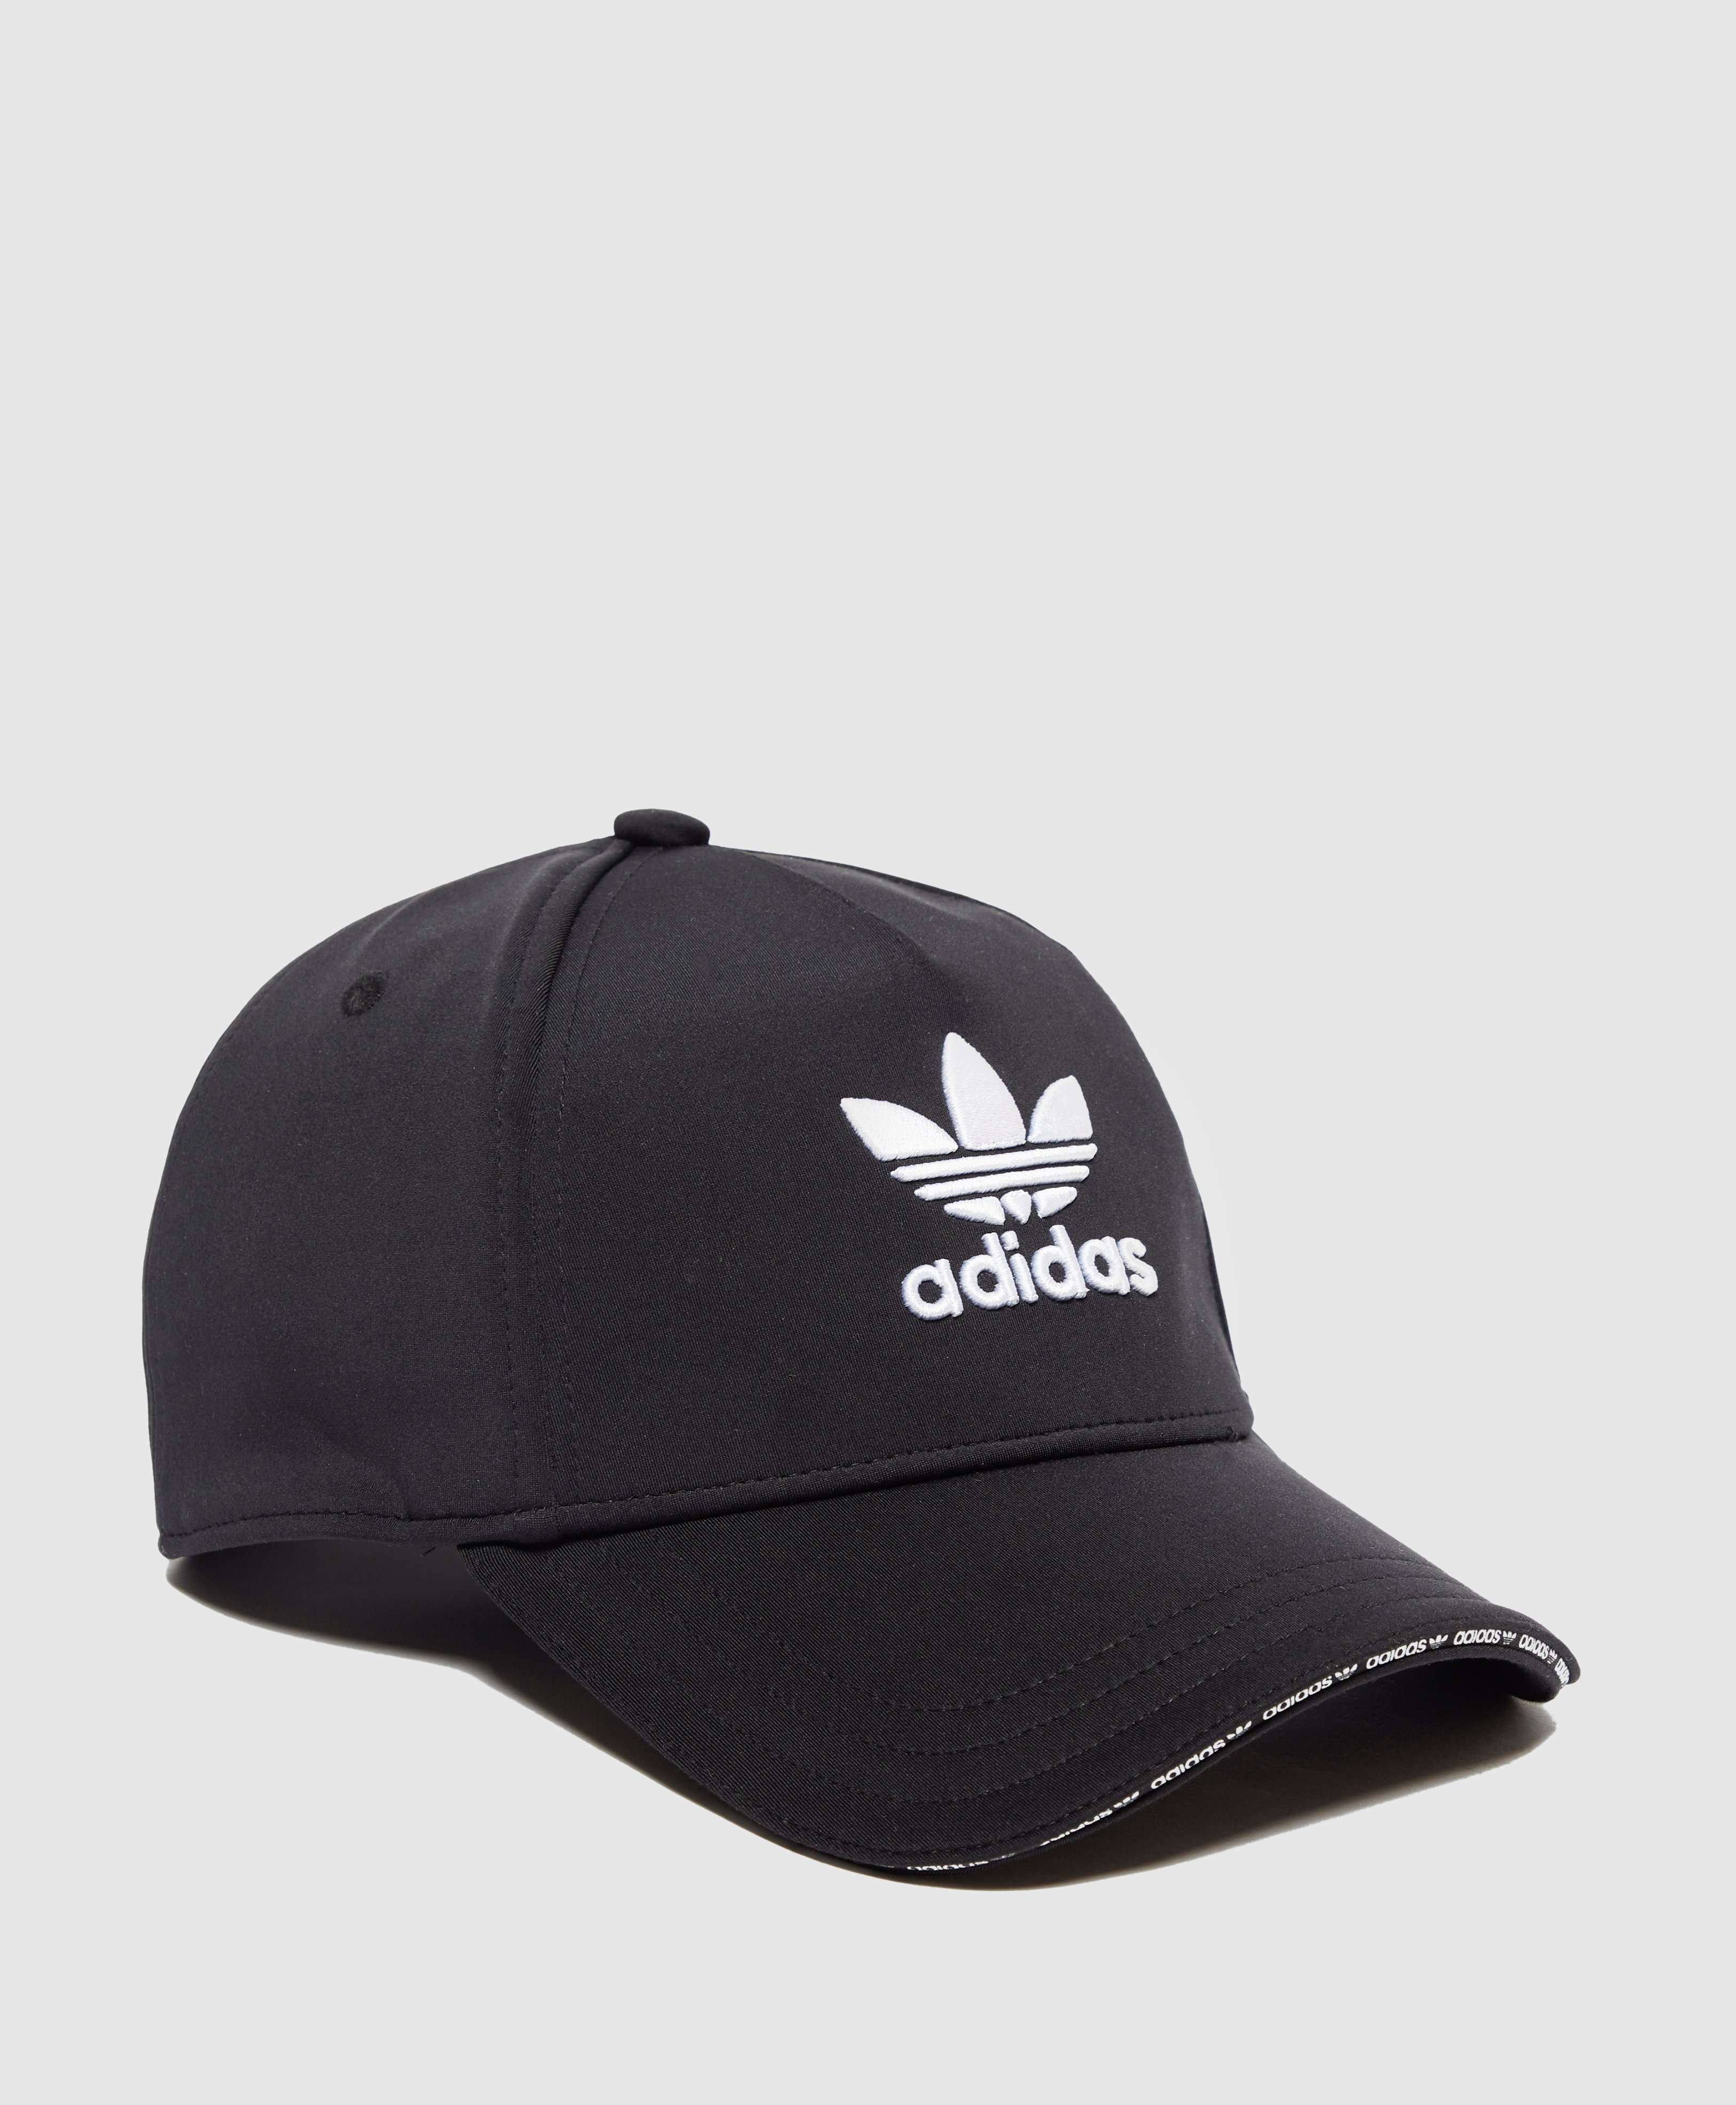 adidas Originals Trefoil Poly Cap